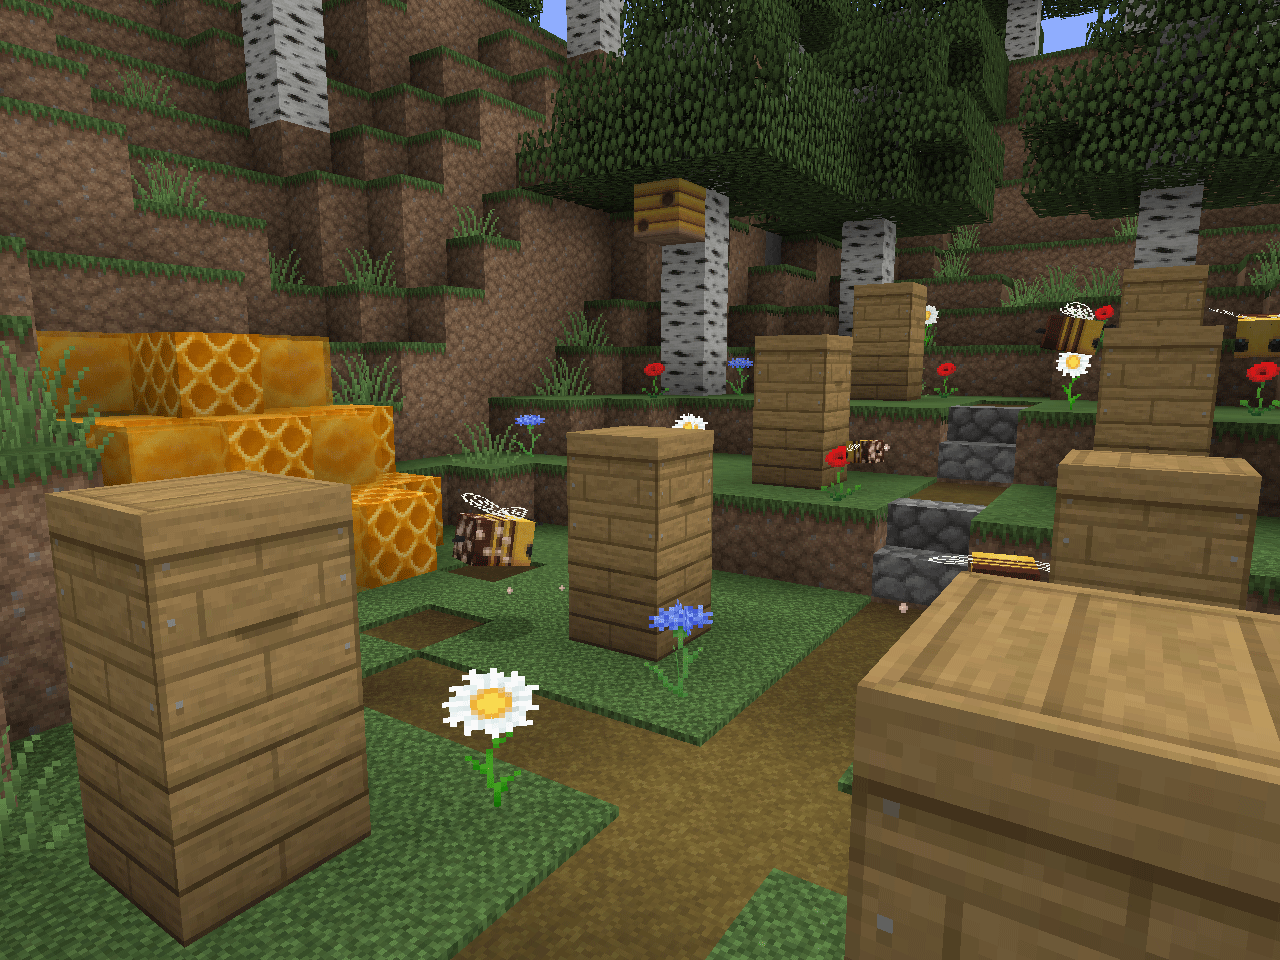 Depixel for Minecraft 1.15 preview thumbnail